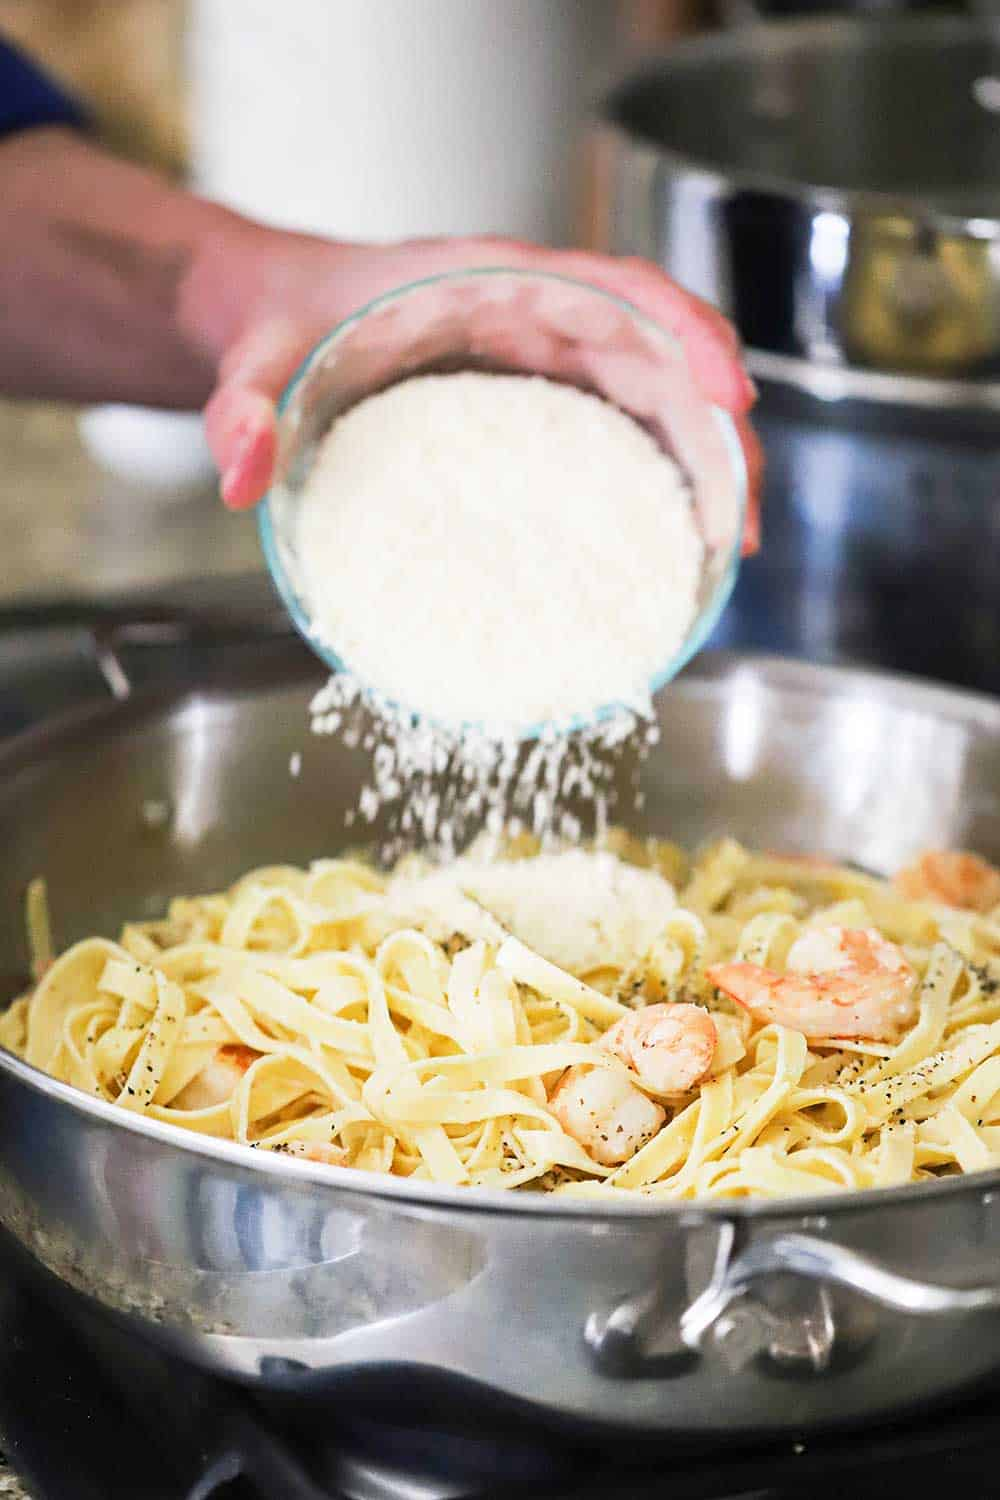 A person transferring a cup of grated Parmigiano-Regianno cheese into a skillet of cooked shrimp and fettuccine in a light cream sauce.